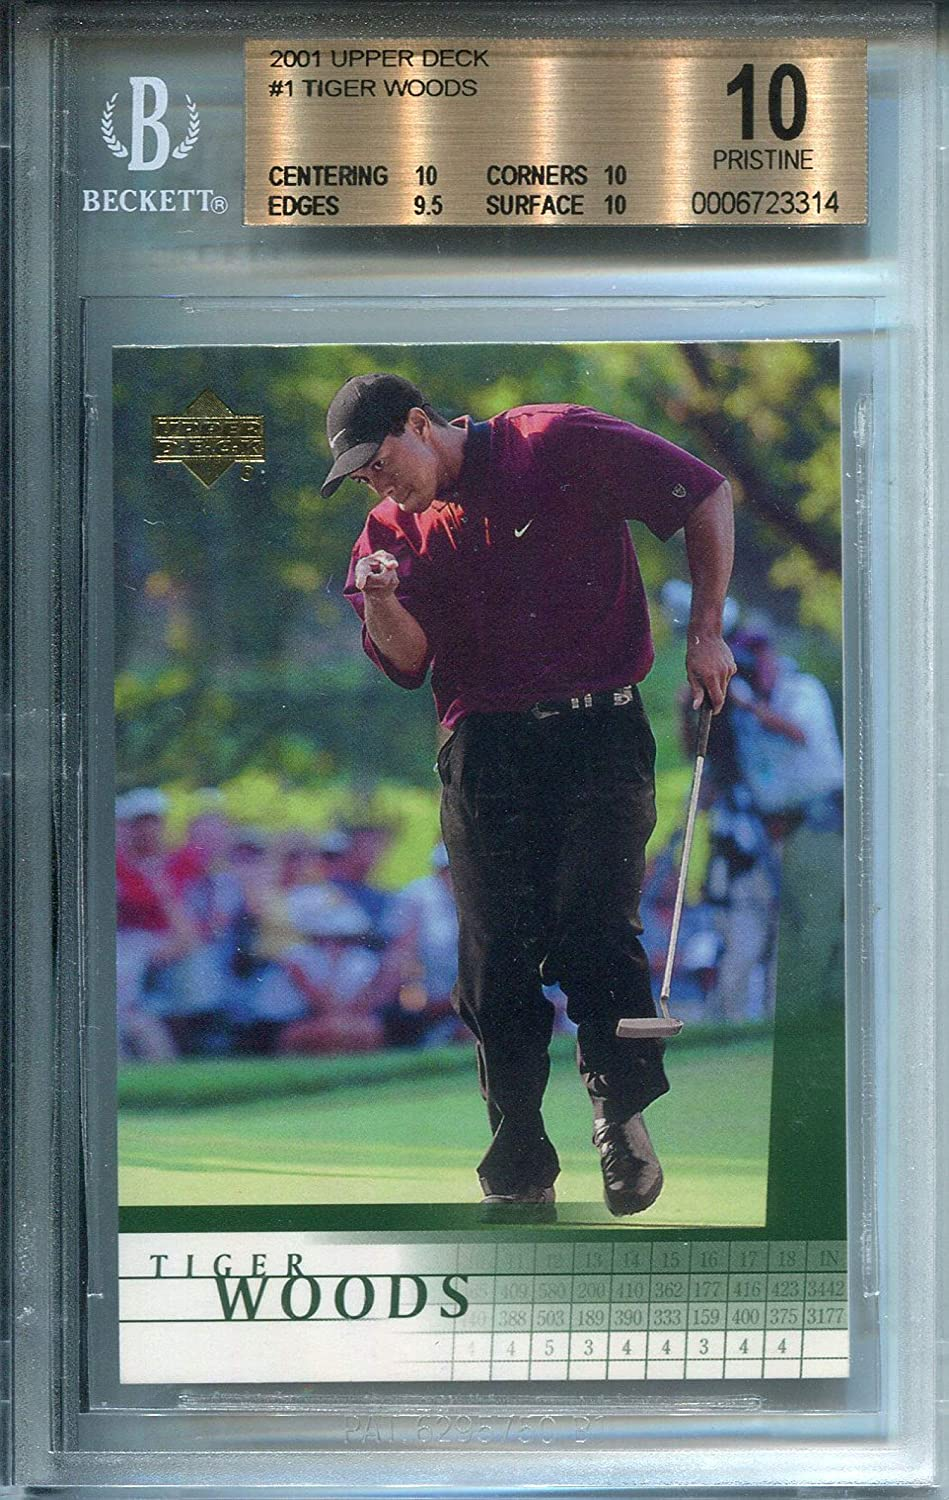 Tiger Woods 2001 Upper Deck Rookie Card Bvg At Amazons Sports